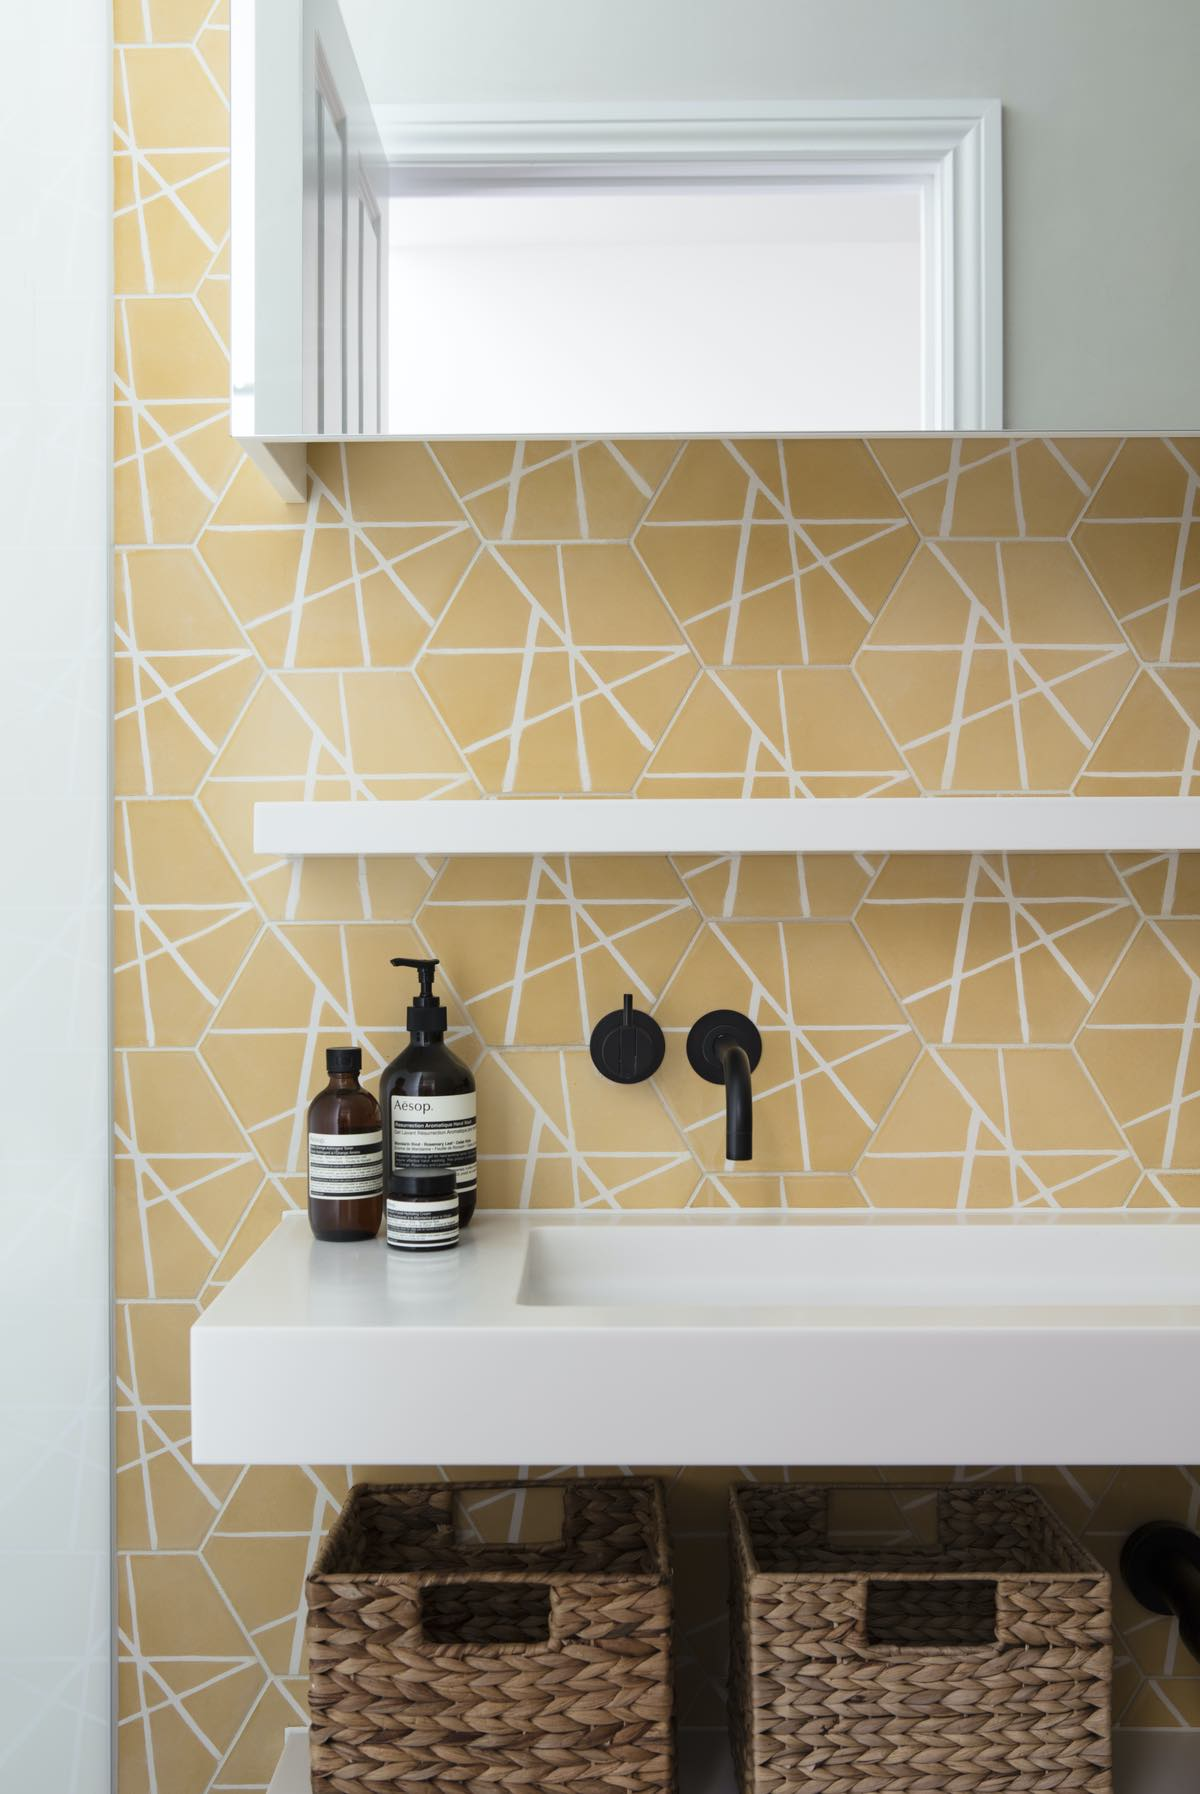 yellow ceramic used for the wall finishing in this bathroom